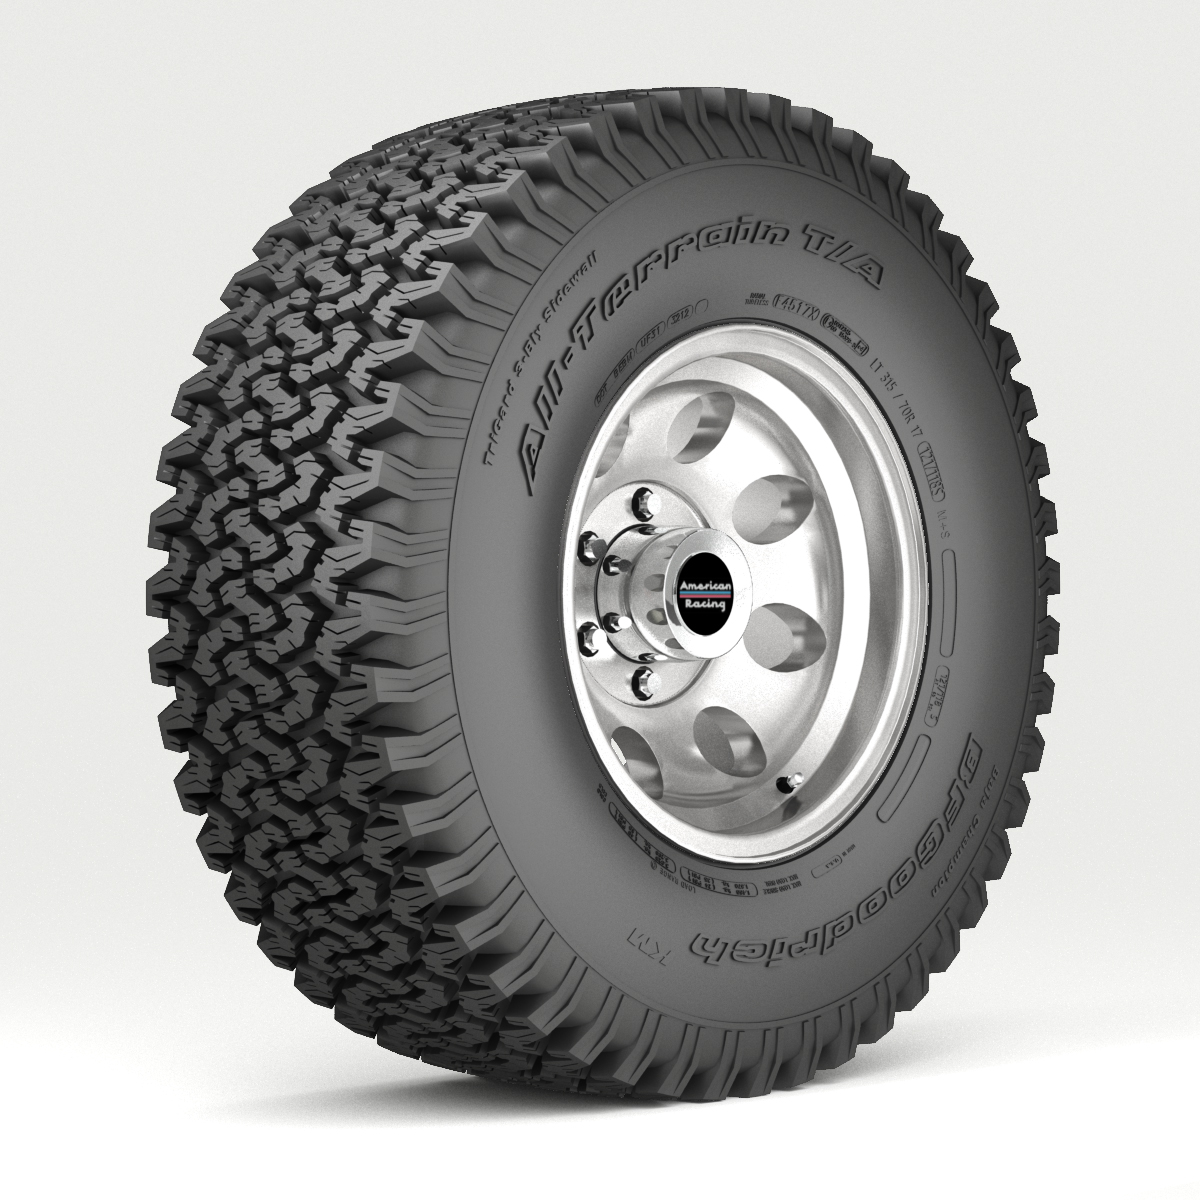 off road wheel and tire 3d model 3ds max fbx obj 224390